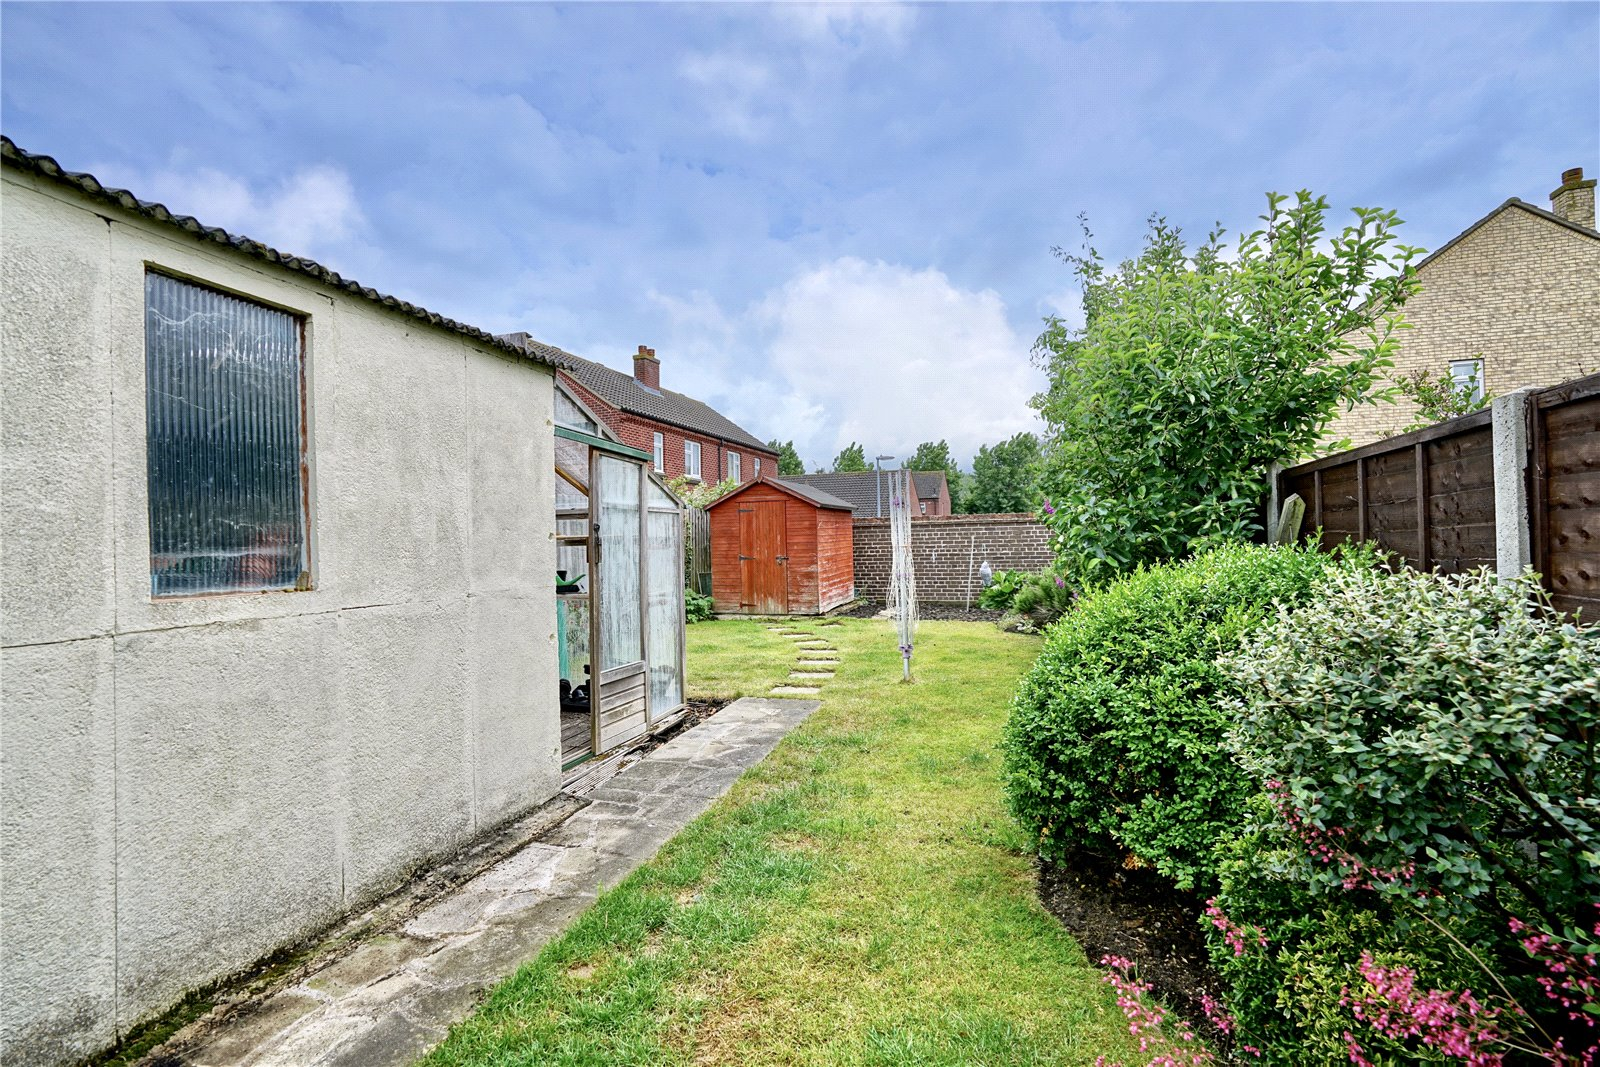 2 bed house for sale in Ackerman Street, Eaton Socon  - Property Image 4